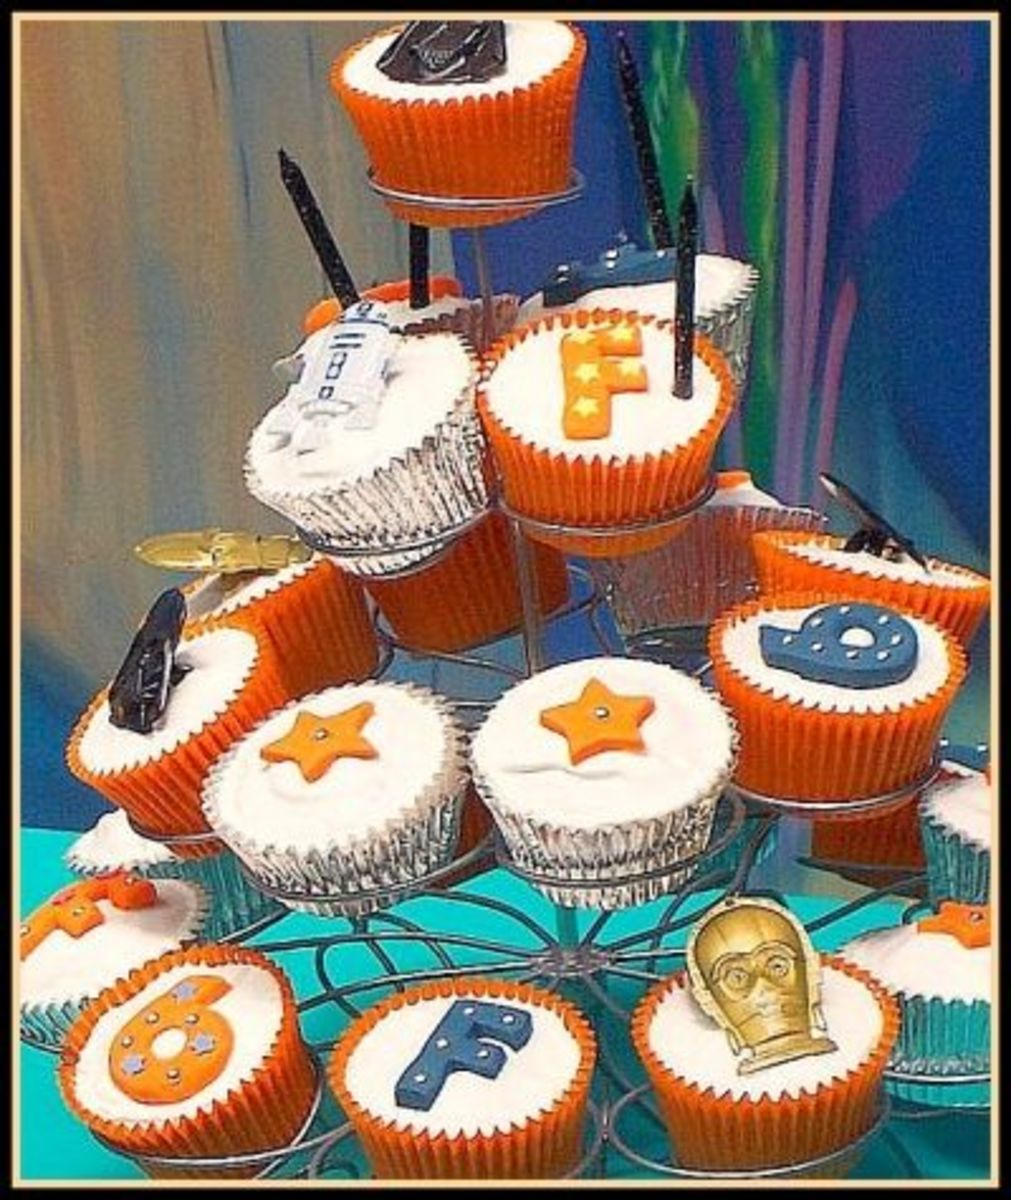 Cupcake Tower of Star Wars Creations!